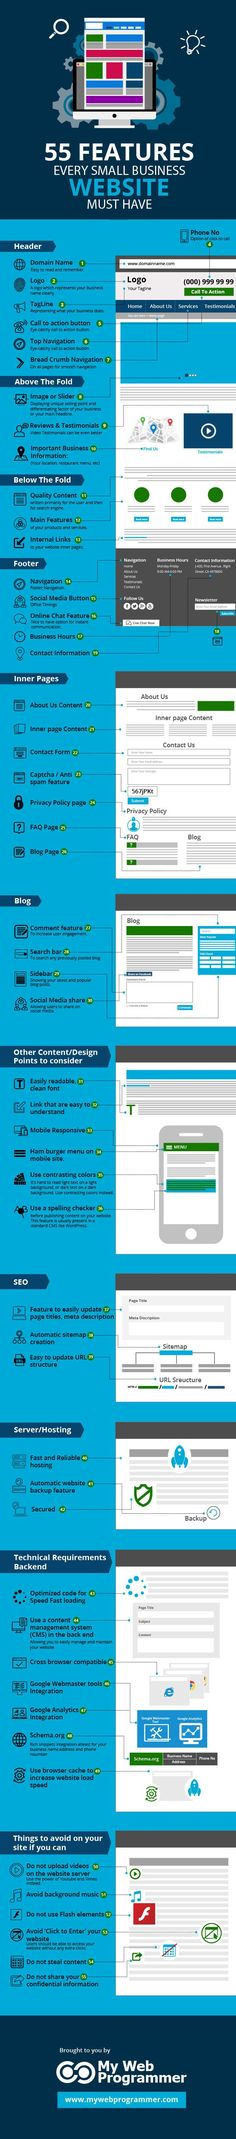 55 Features for a Successful Small #Business Website #Infographic #WebDesign